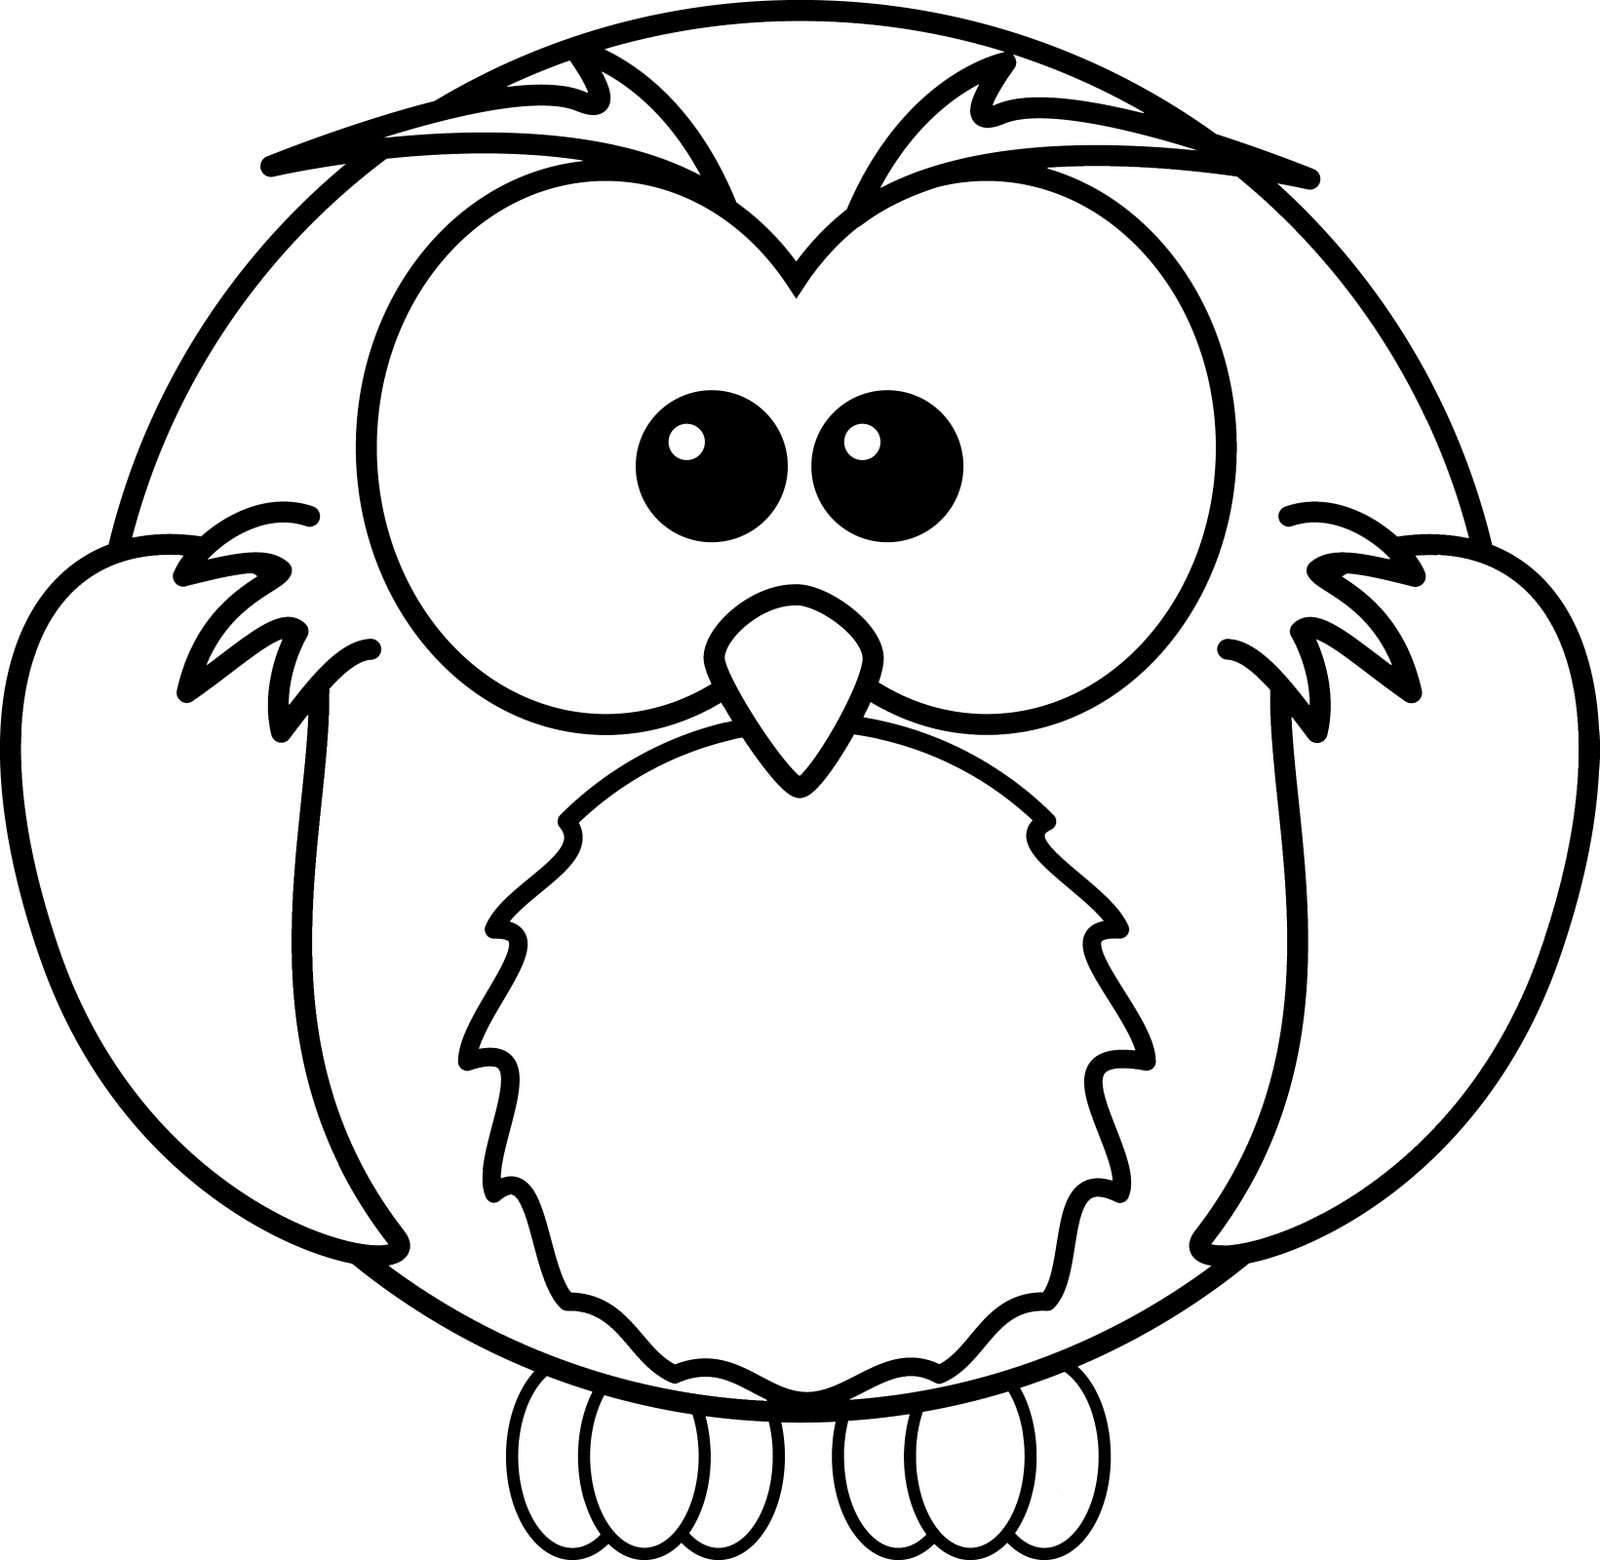 printable pictures of owls print download owl coloring pages for your kids pictures printable of owls